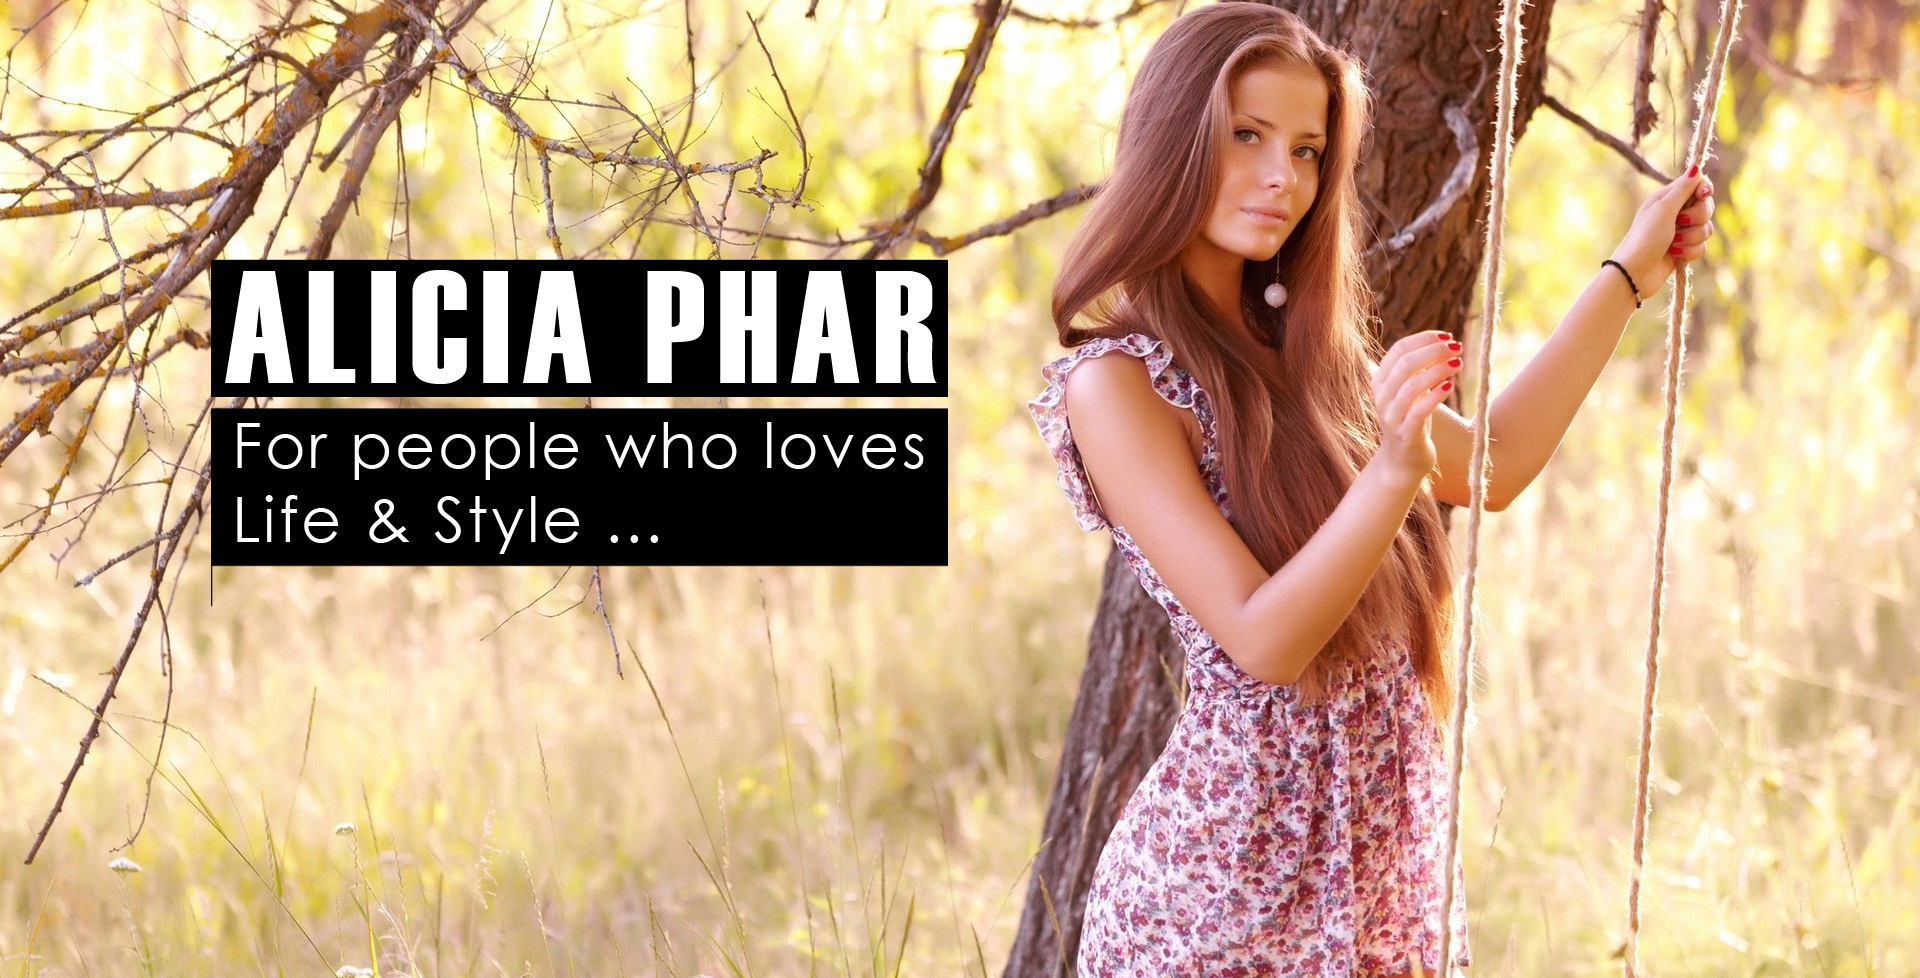 ALICIA PHAR BLOG